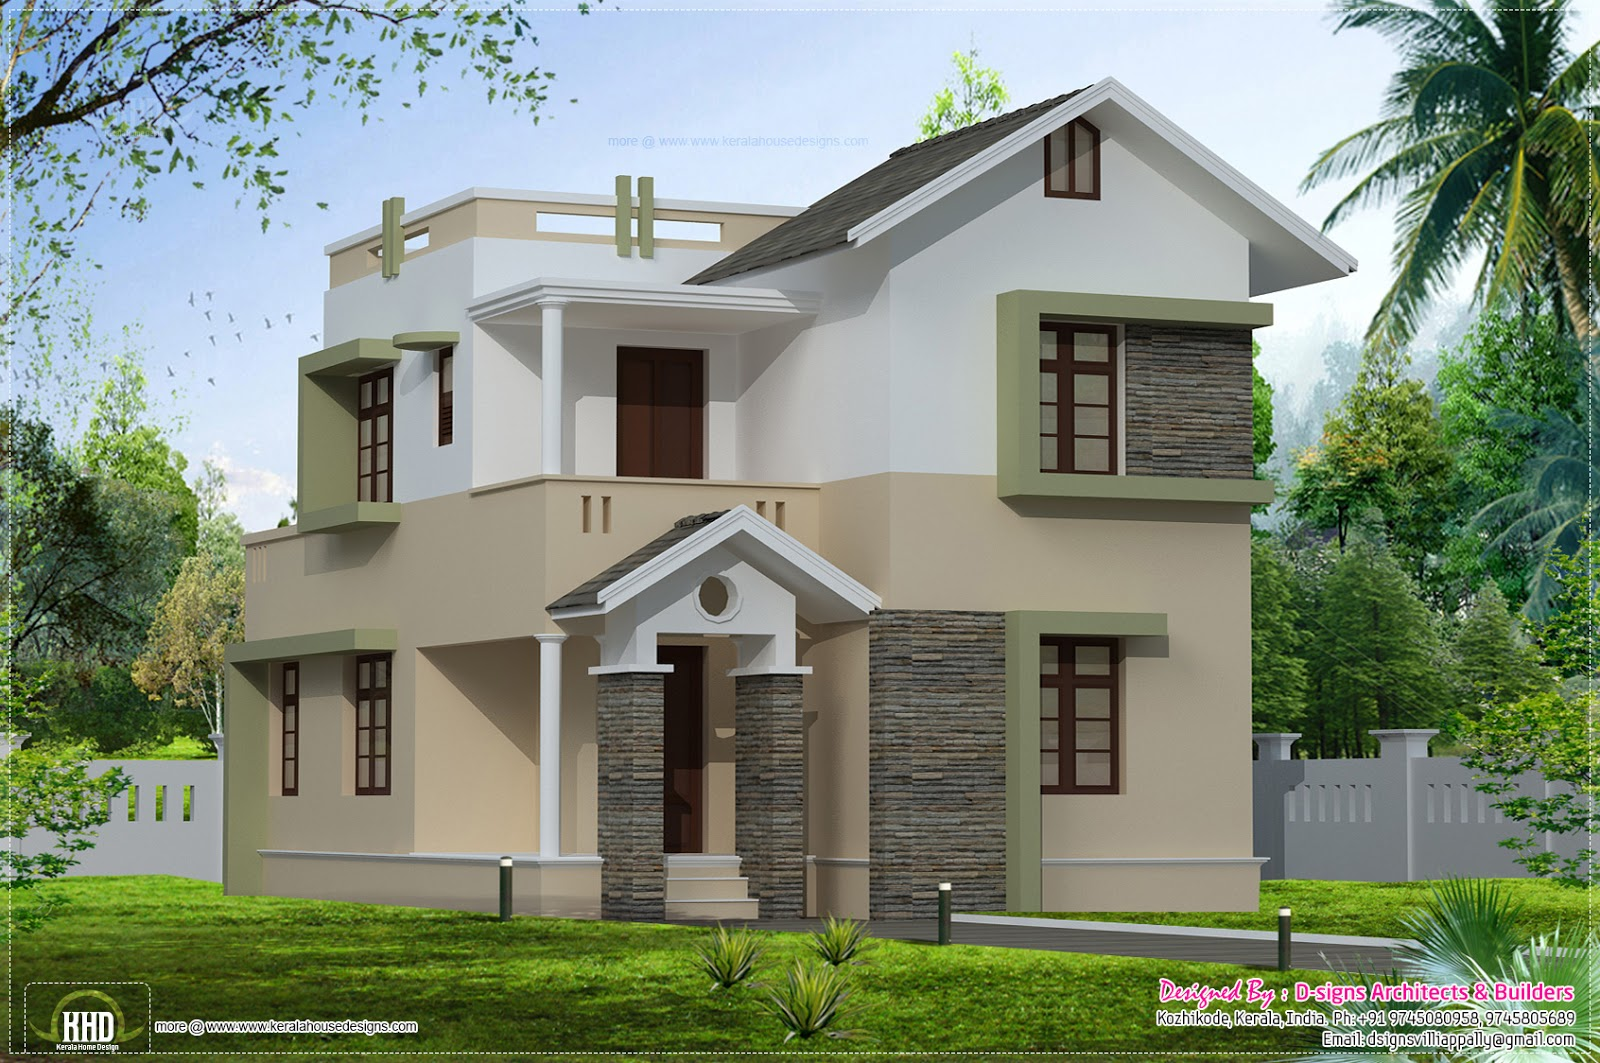 ... square feet small villa elevation - Kerala home design and floor plans